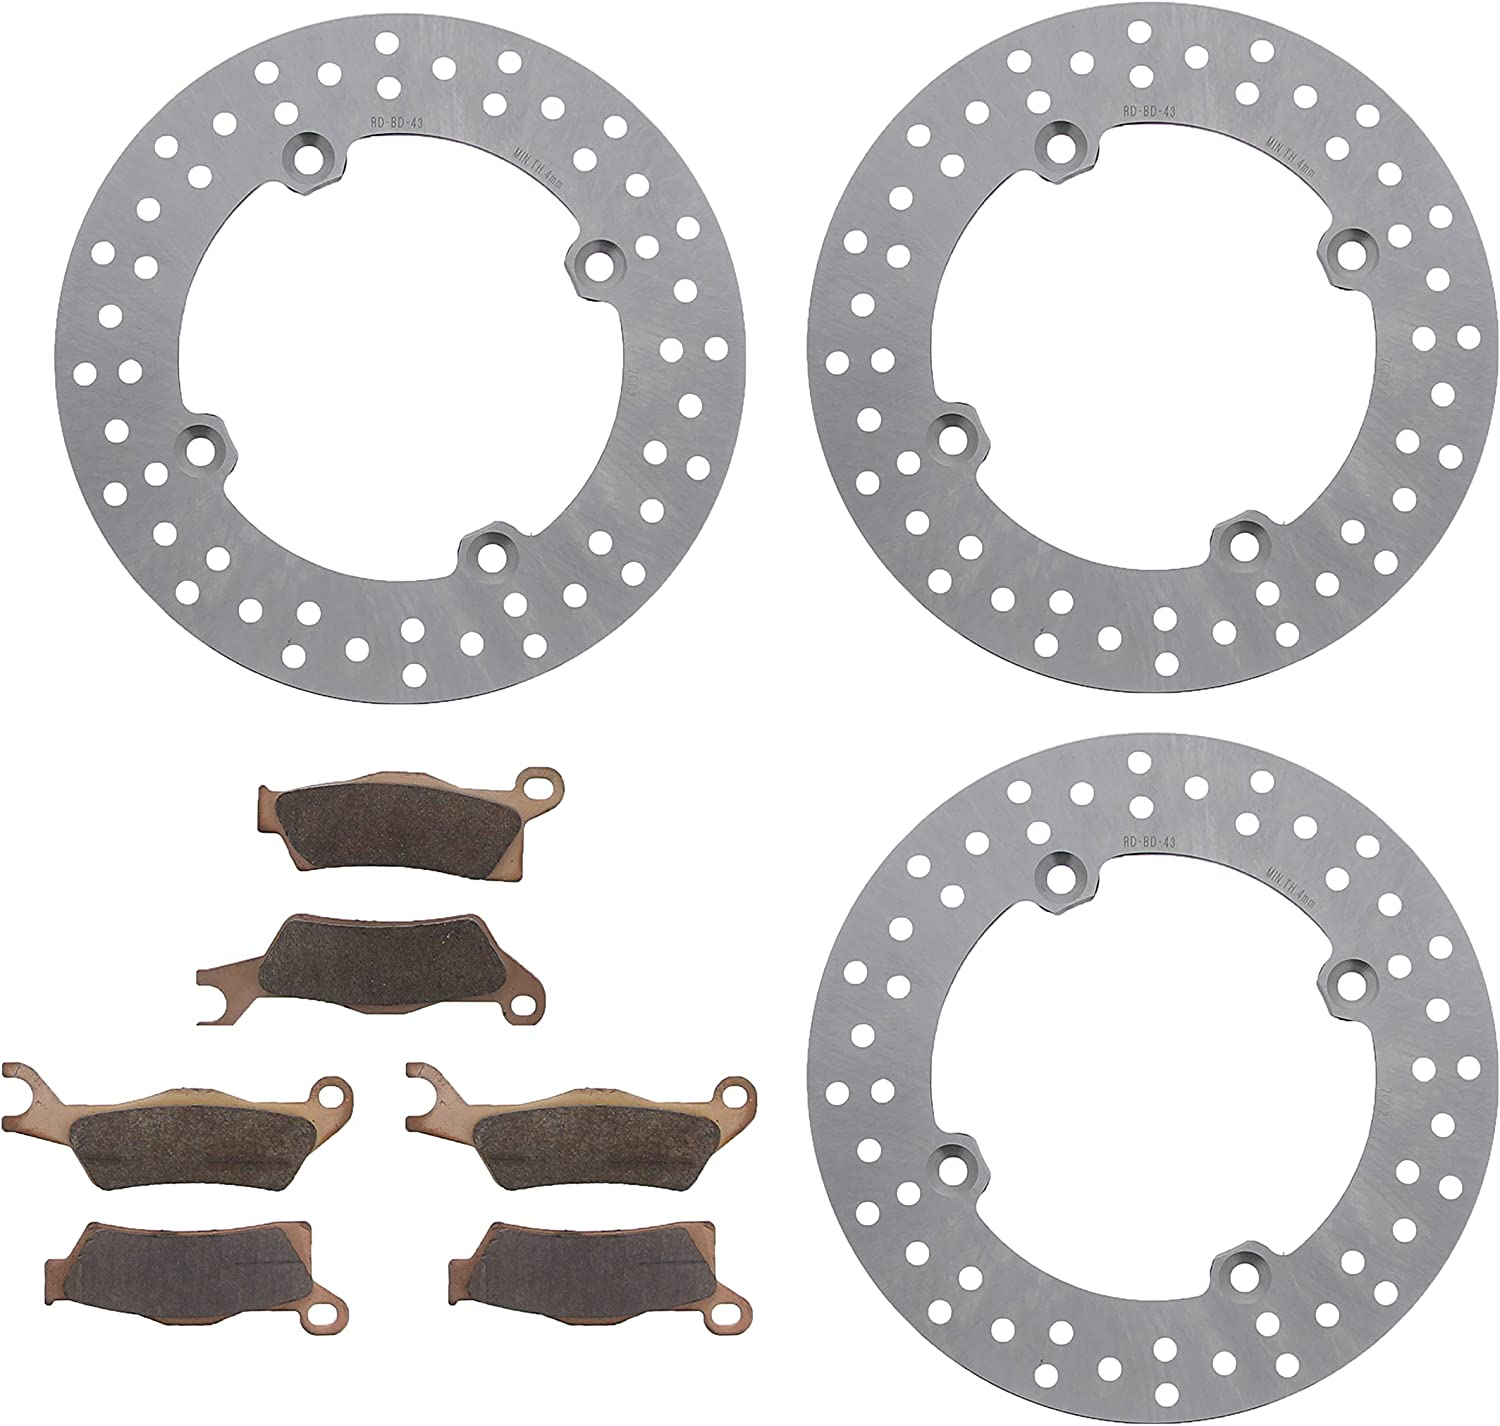 2016 Can-Am Outlander Max XTP 650 Front /& Rear Brake Rotors and Brake Pads